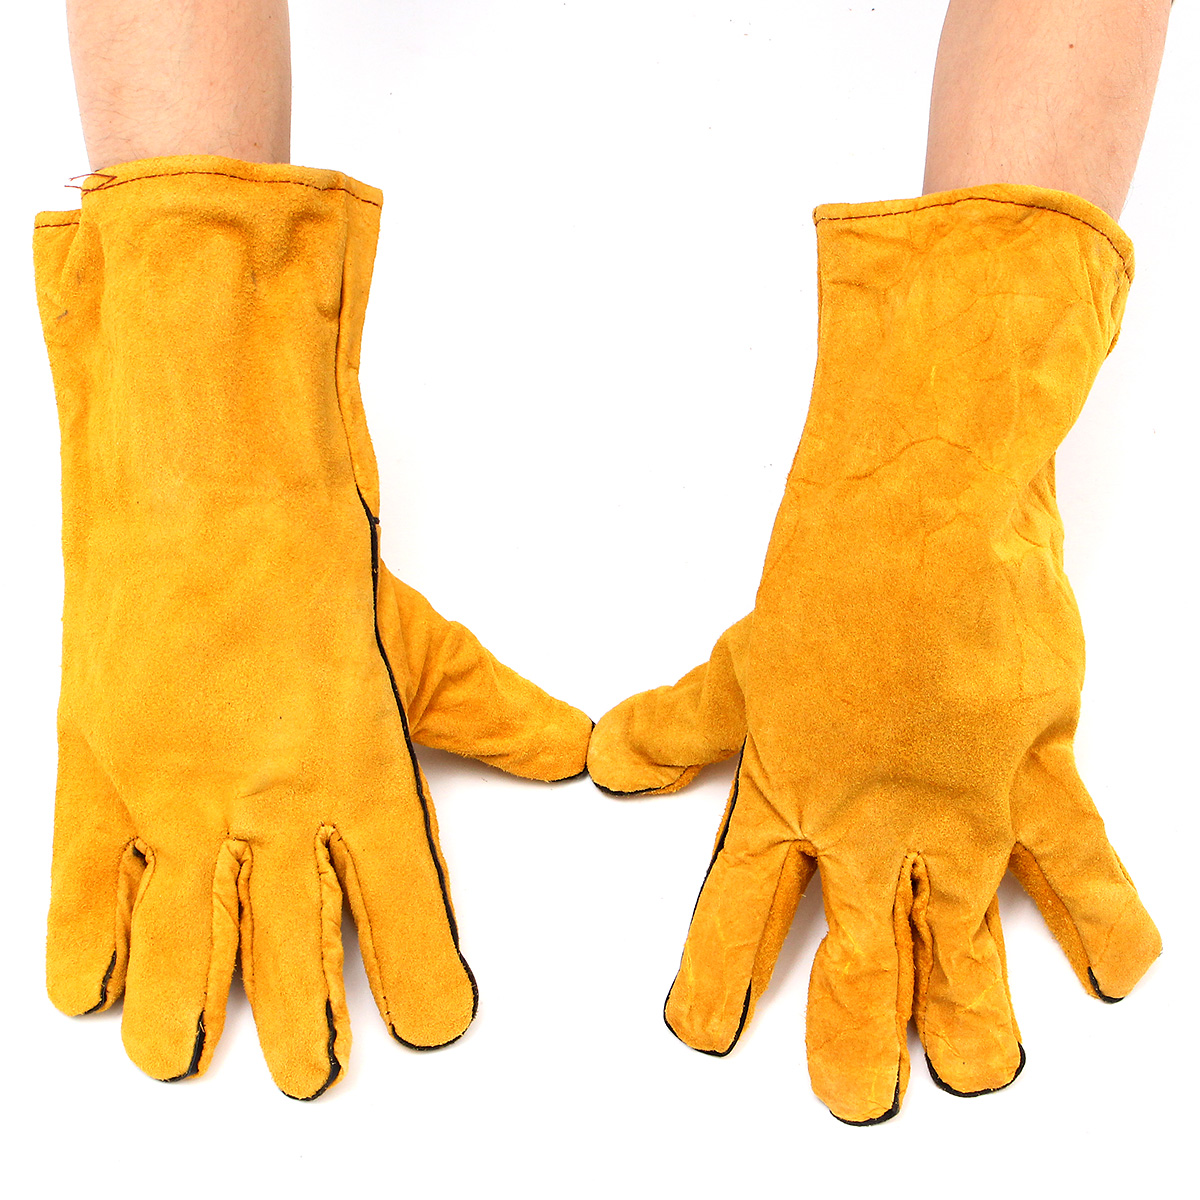 Welders Welding Work Soft Cowhide Leather Plus Gloves for Protecting Hand